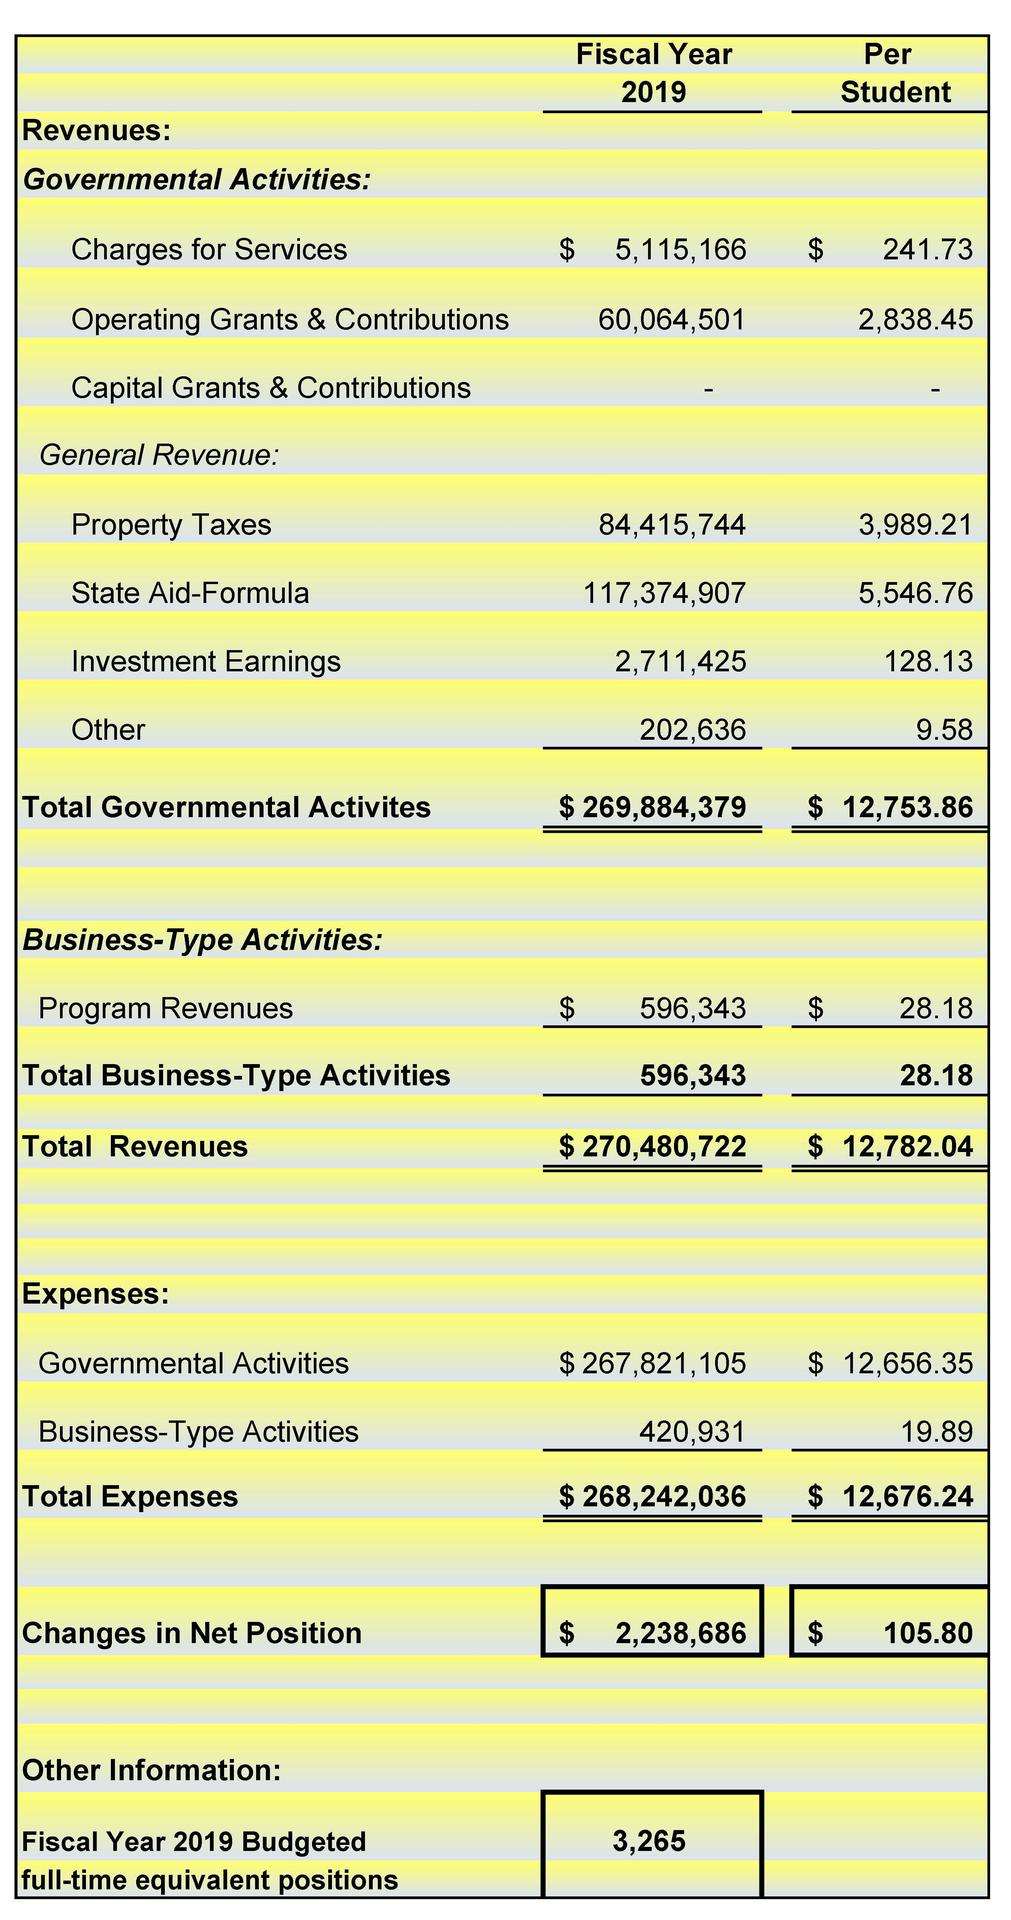 Fiscal Year 2019 Budgeted